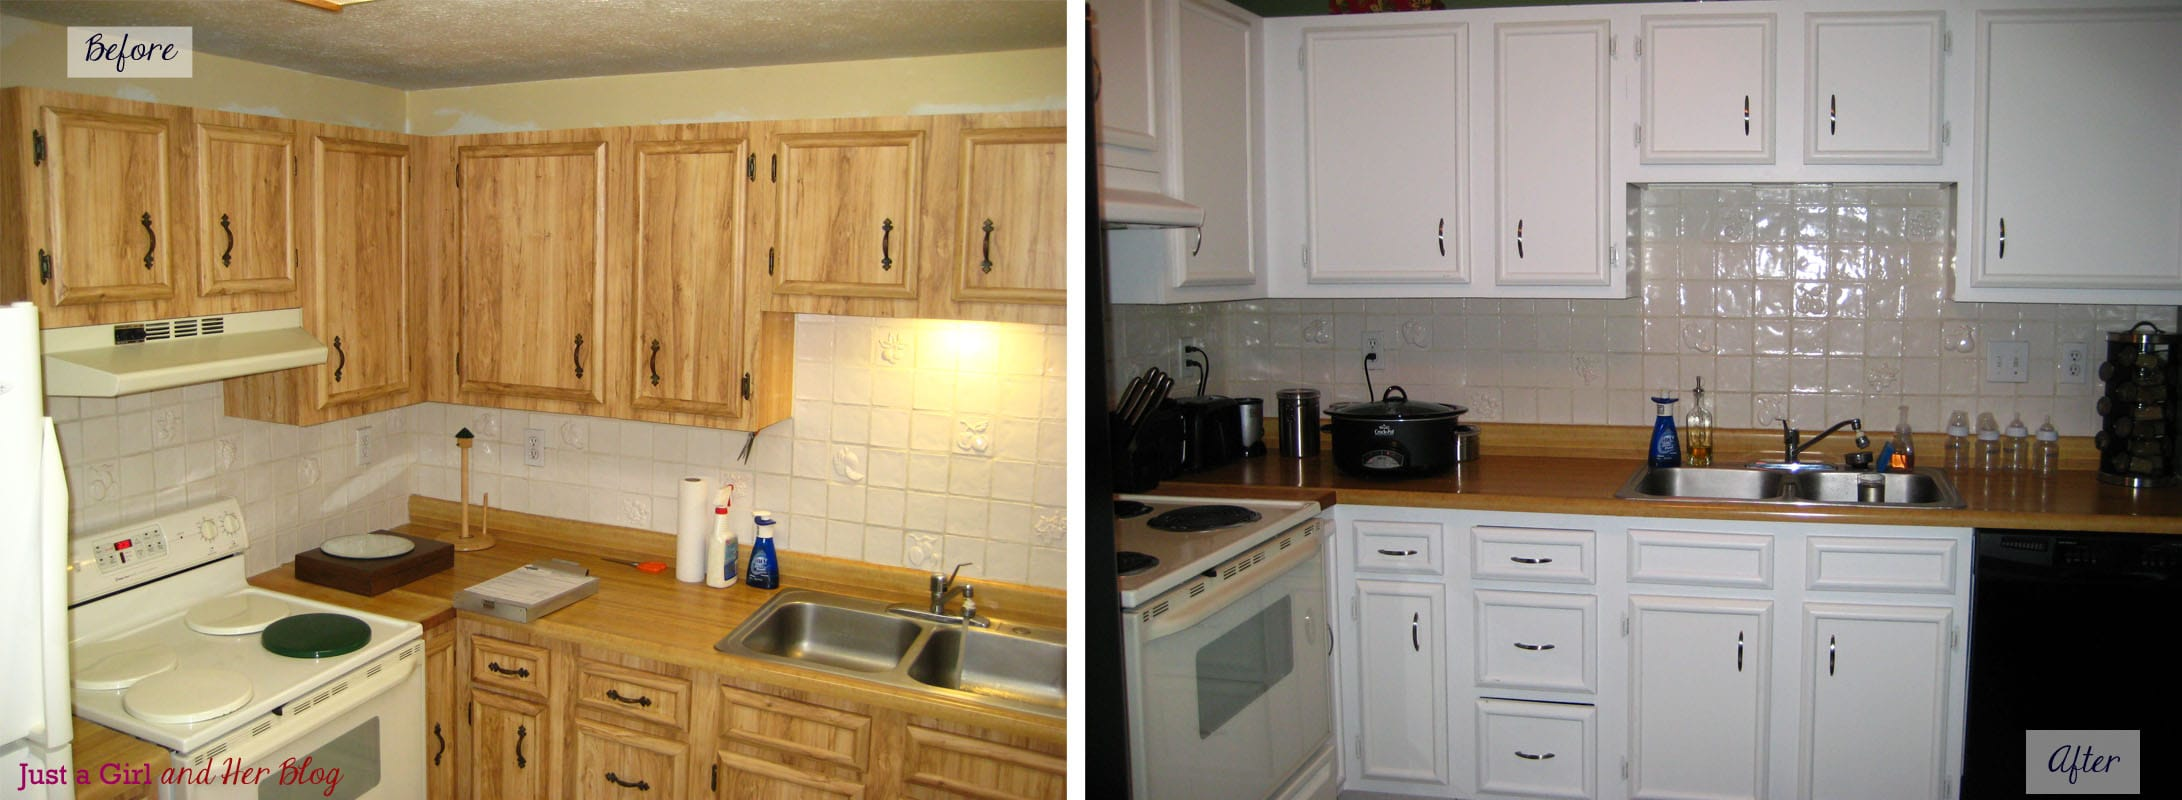 Streamlining A Small Kitchen In Three Easy Steps